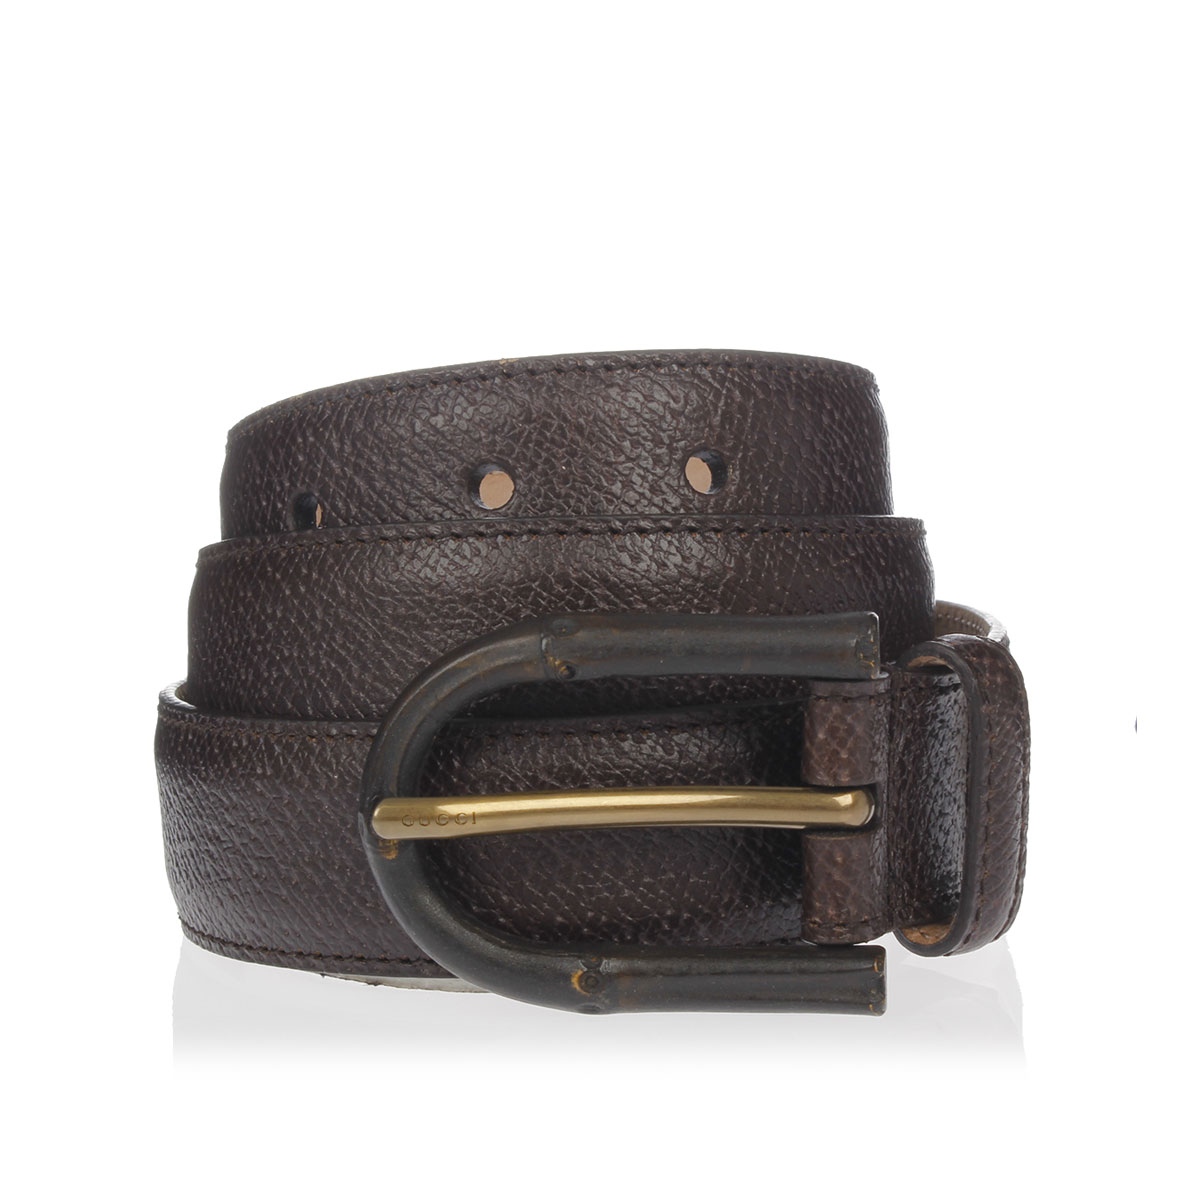 8d3fcbc378 Gucci Uomo Cintura in Pelle - Glamood Outlet